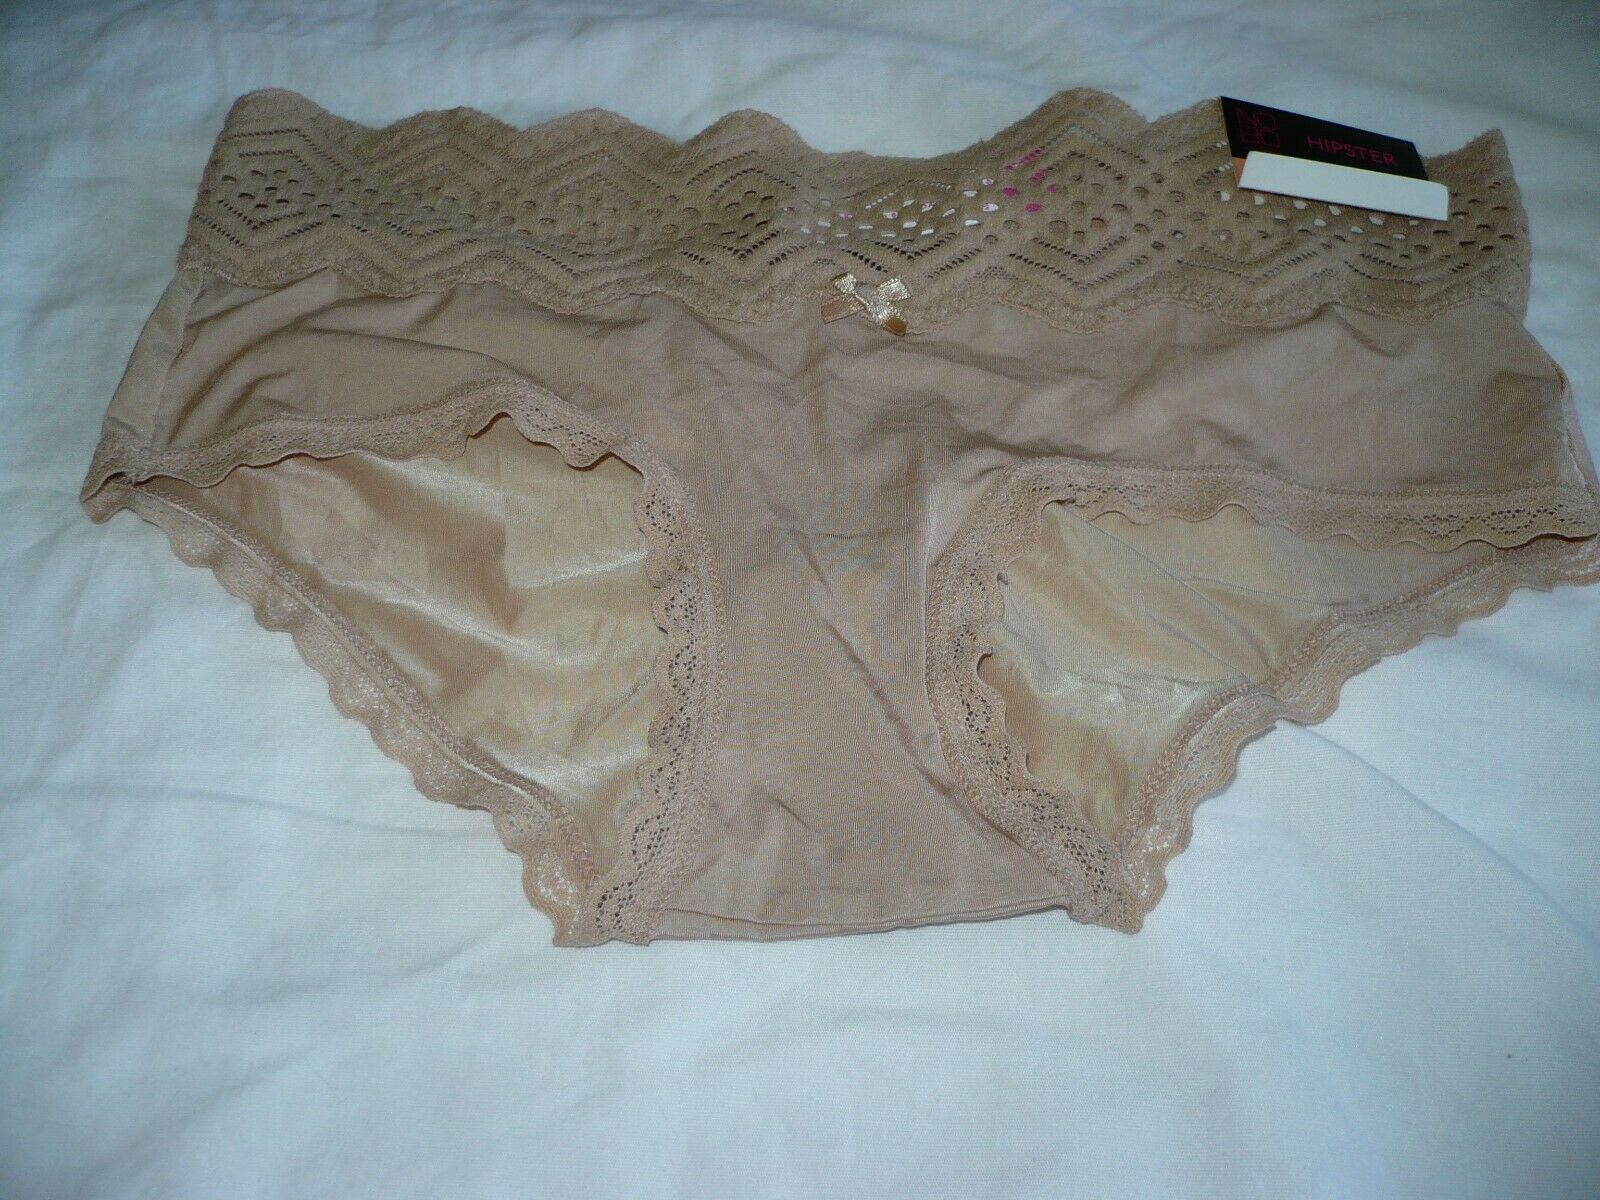 Primary image for No Boundaries Women's Micro & Lace Hipsters Size 3XL (10)  Sheer Taupe